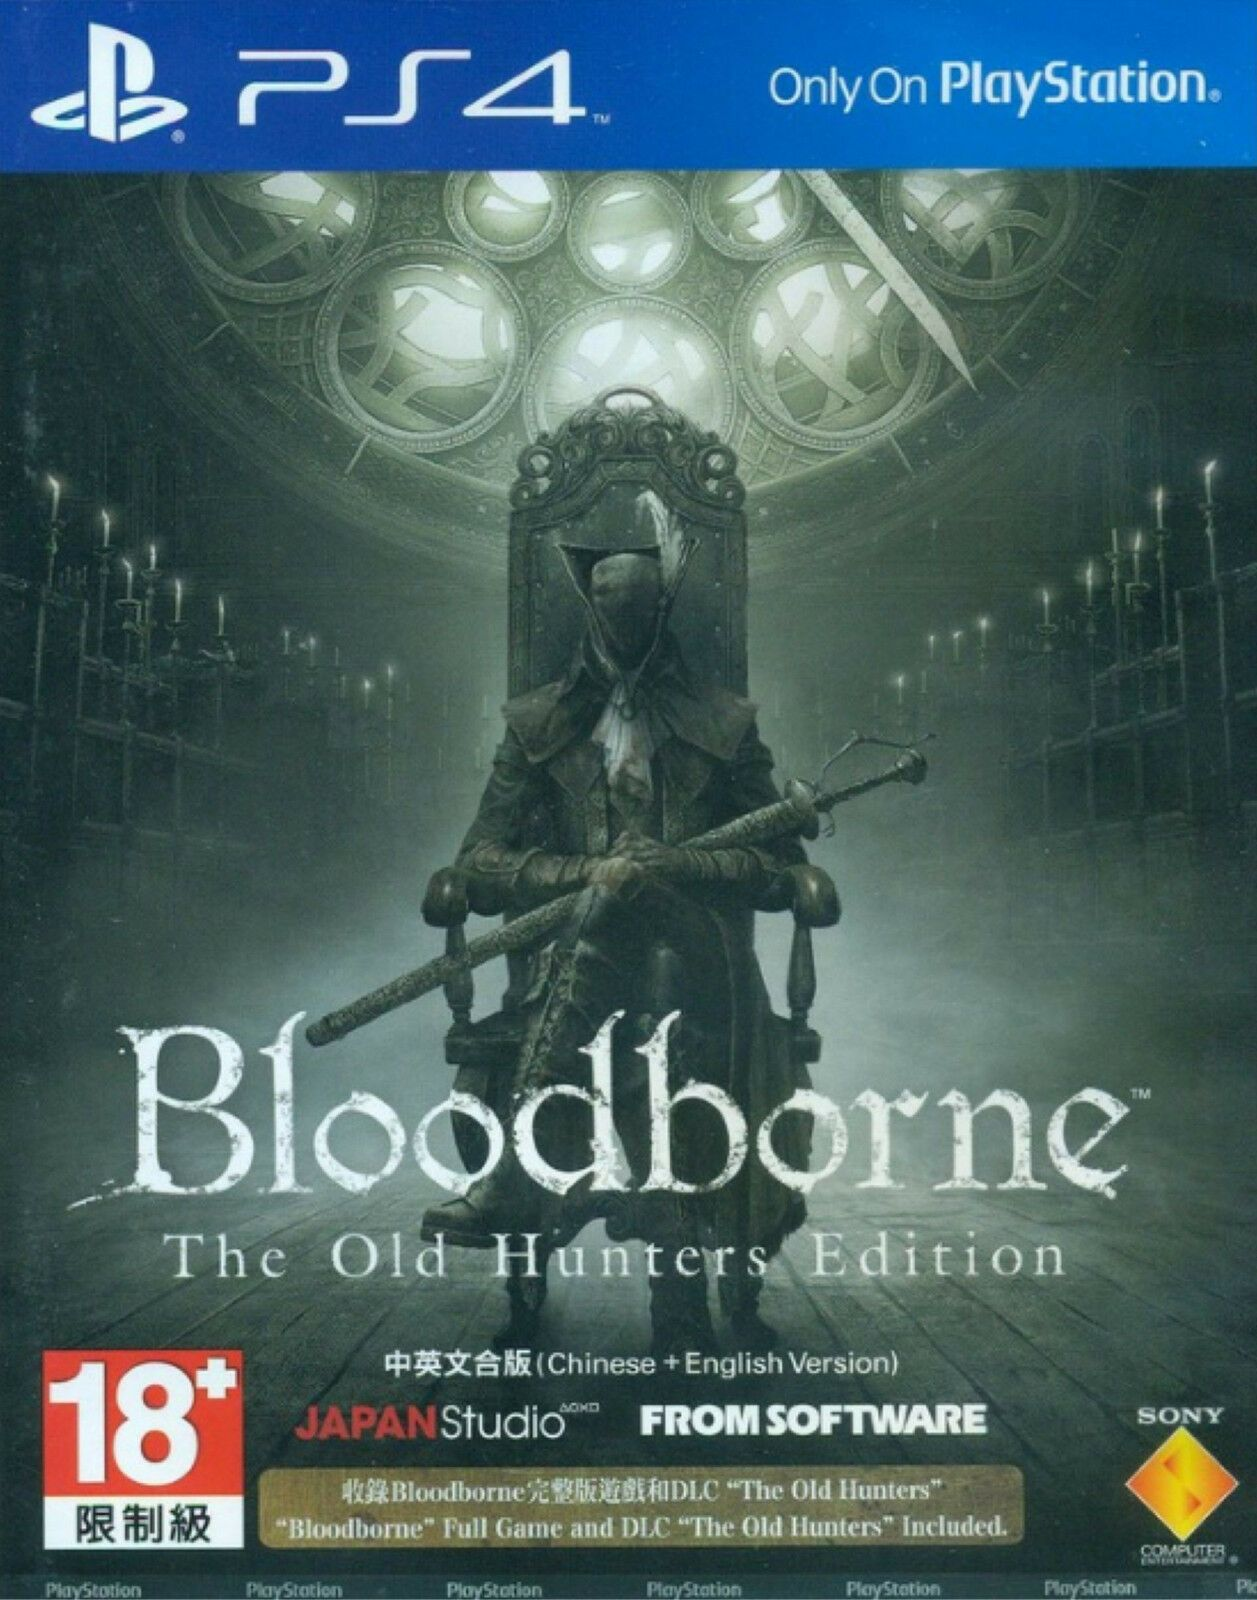 Details About Bloodborne The Old Hunters Edition Hk Chinese English Subtitle Version Ps4 New With Images Chinese English Old Things Olds